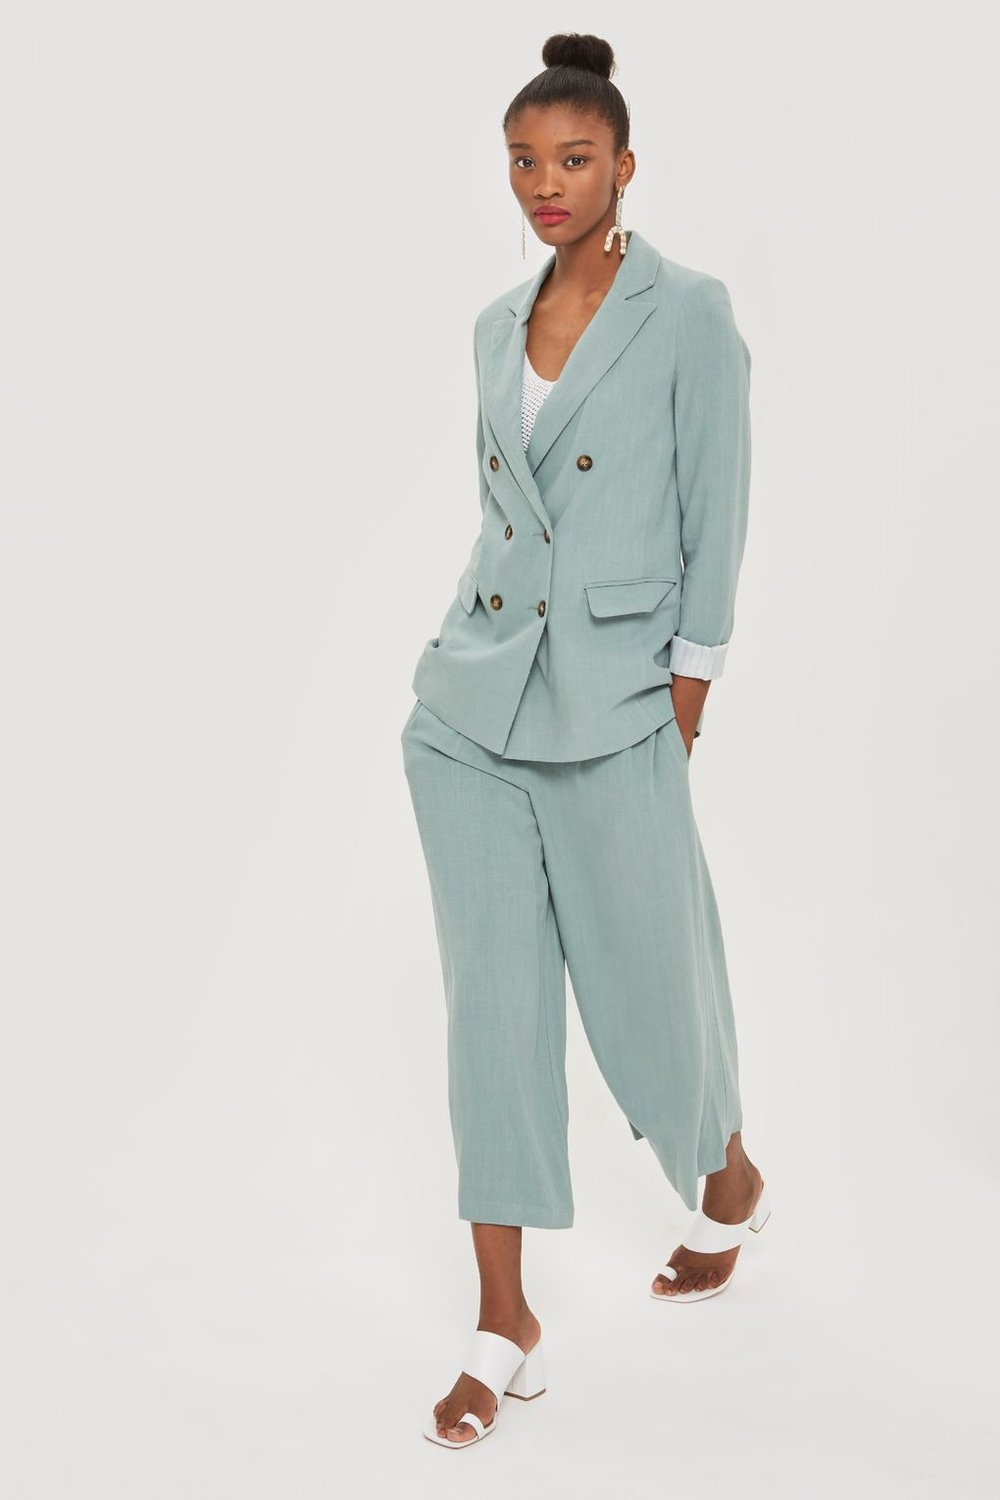 - Topshop / Double Breasted Linen Suit and Horn Button Cropped Leg Trousers